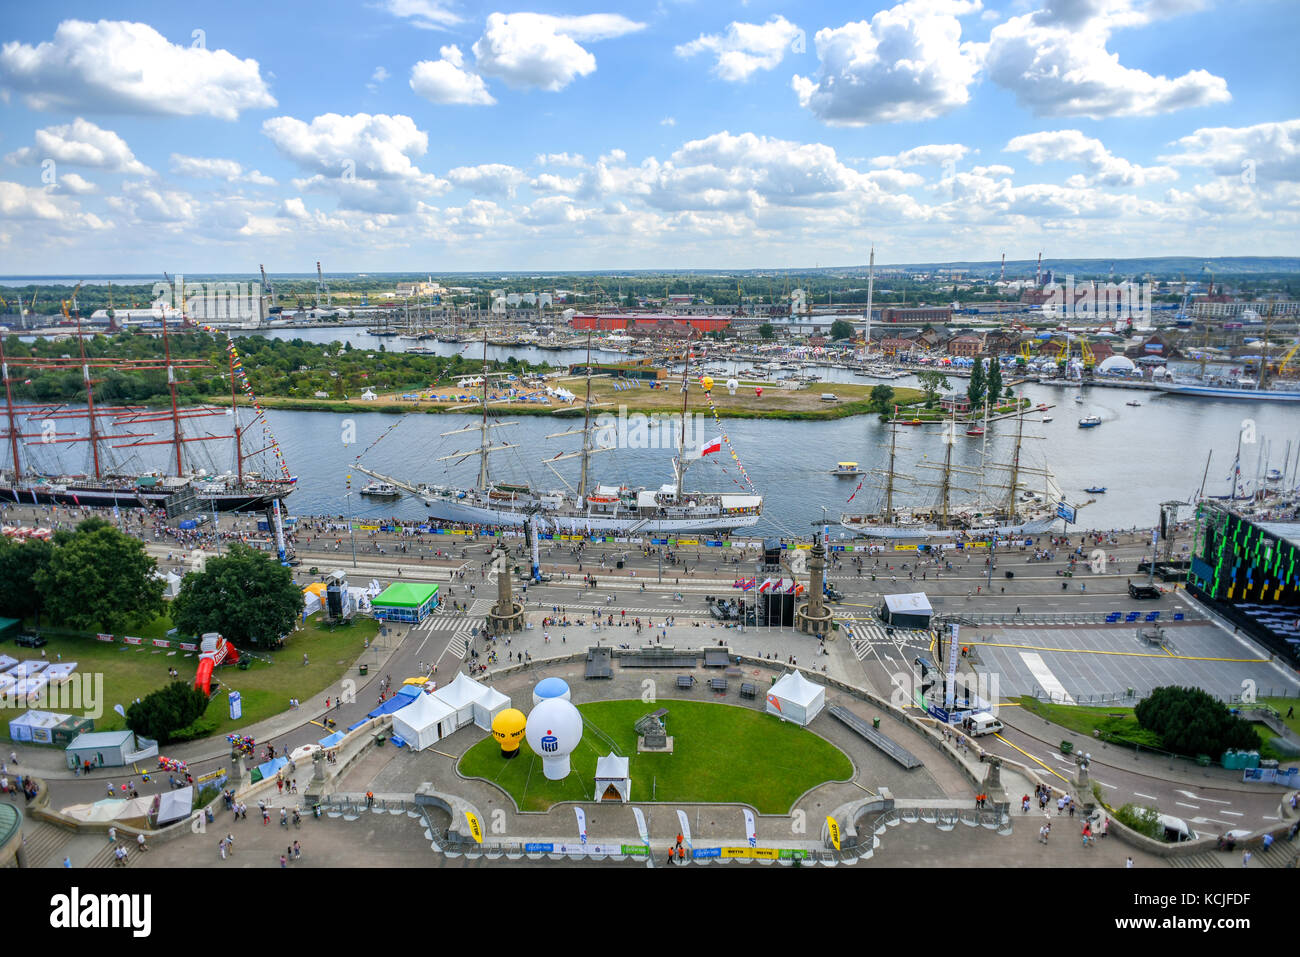 Szczecin, Poland, 7 august 2017: Panorama of the quay in Szczecin during the finale of The Tall Ships Races 2017 - Stock Image